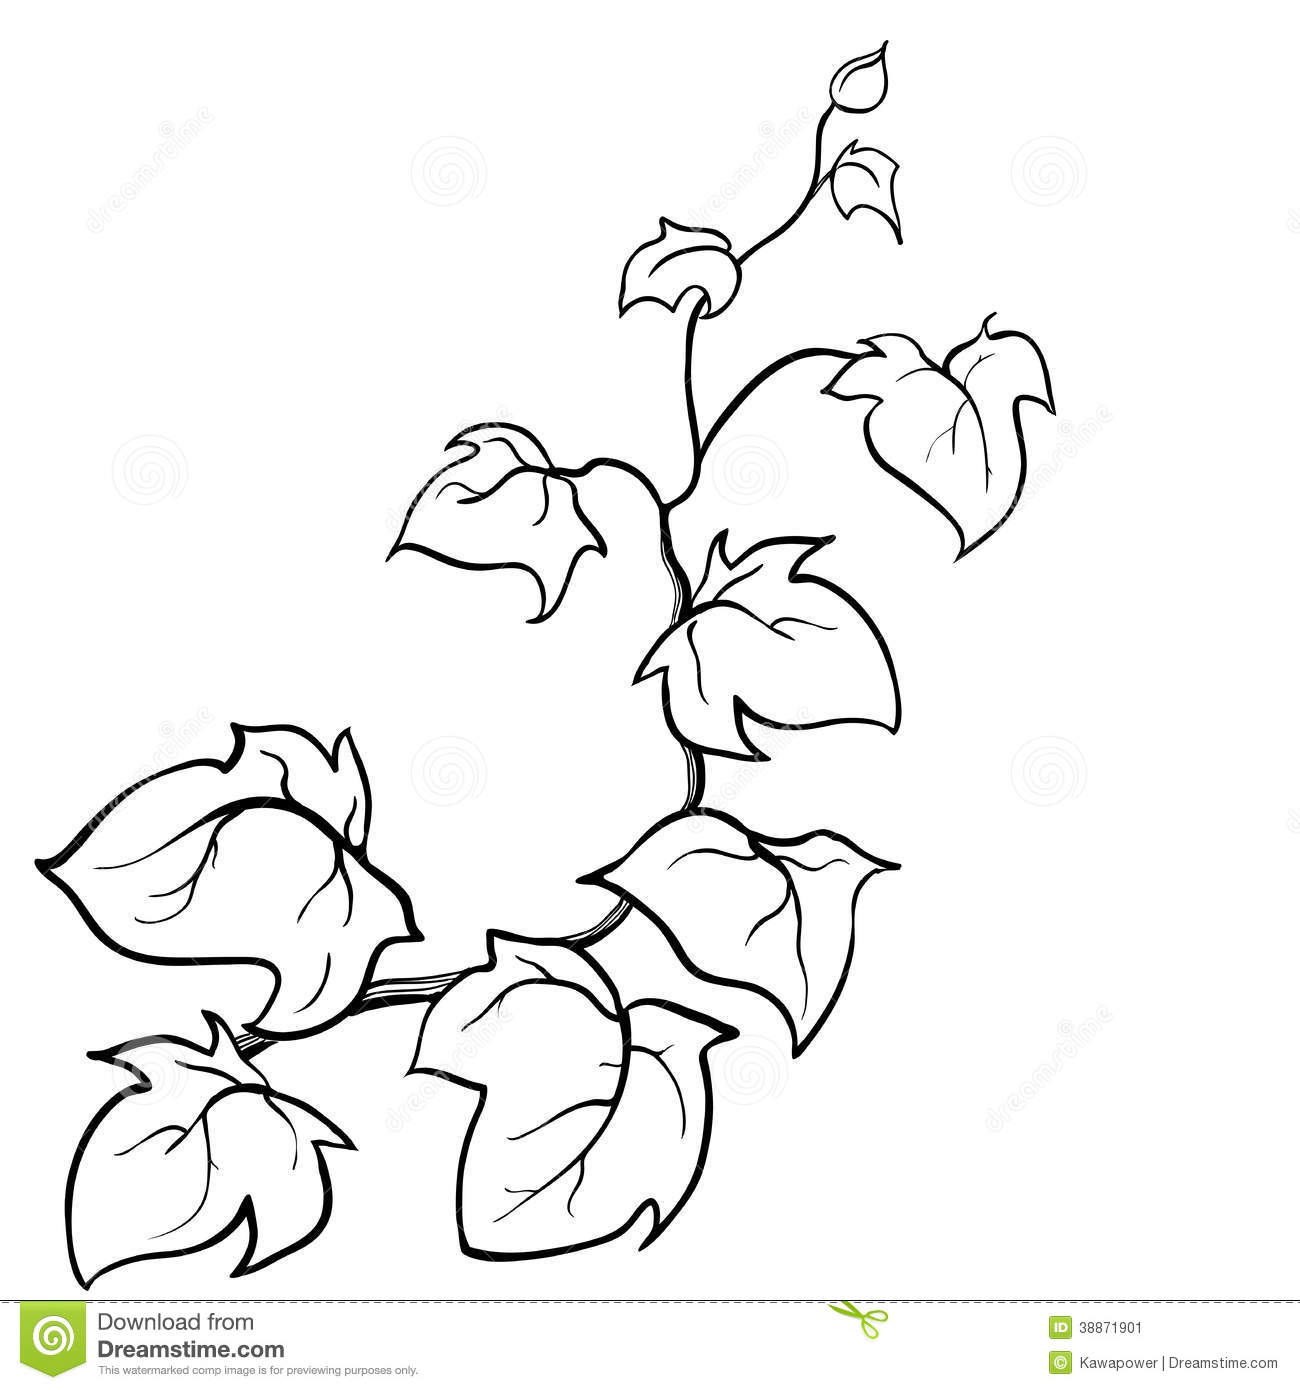 Flower Vine Line Drawing : Vector hand drawn sketch ivy stock illustration